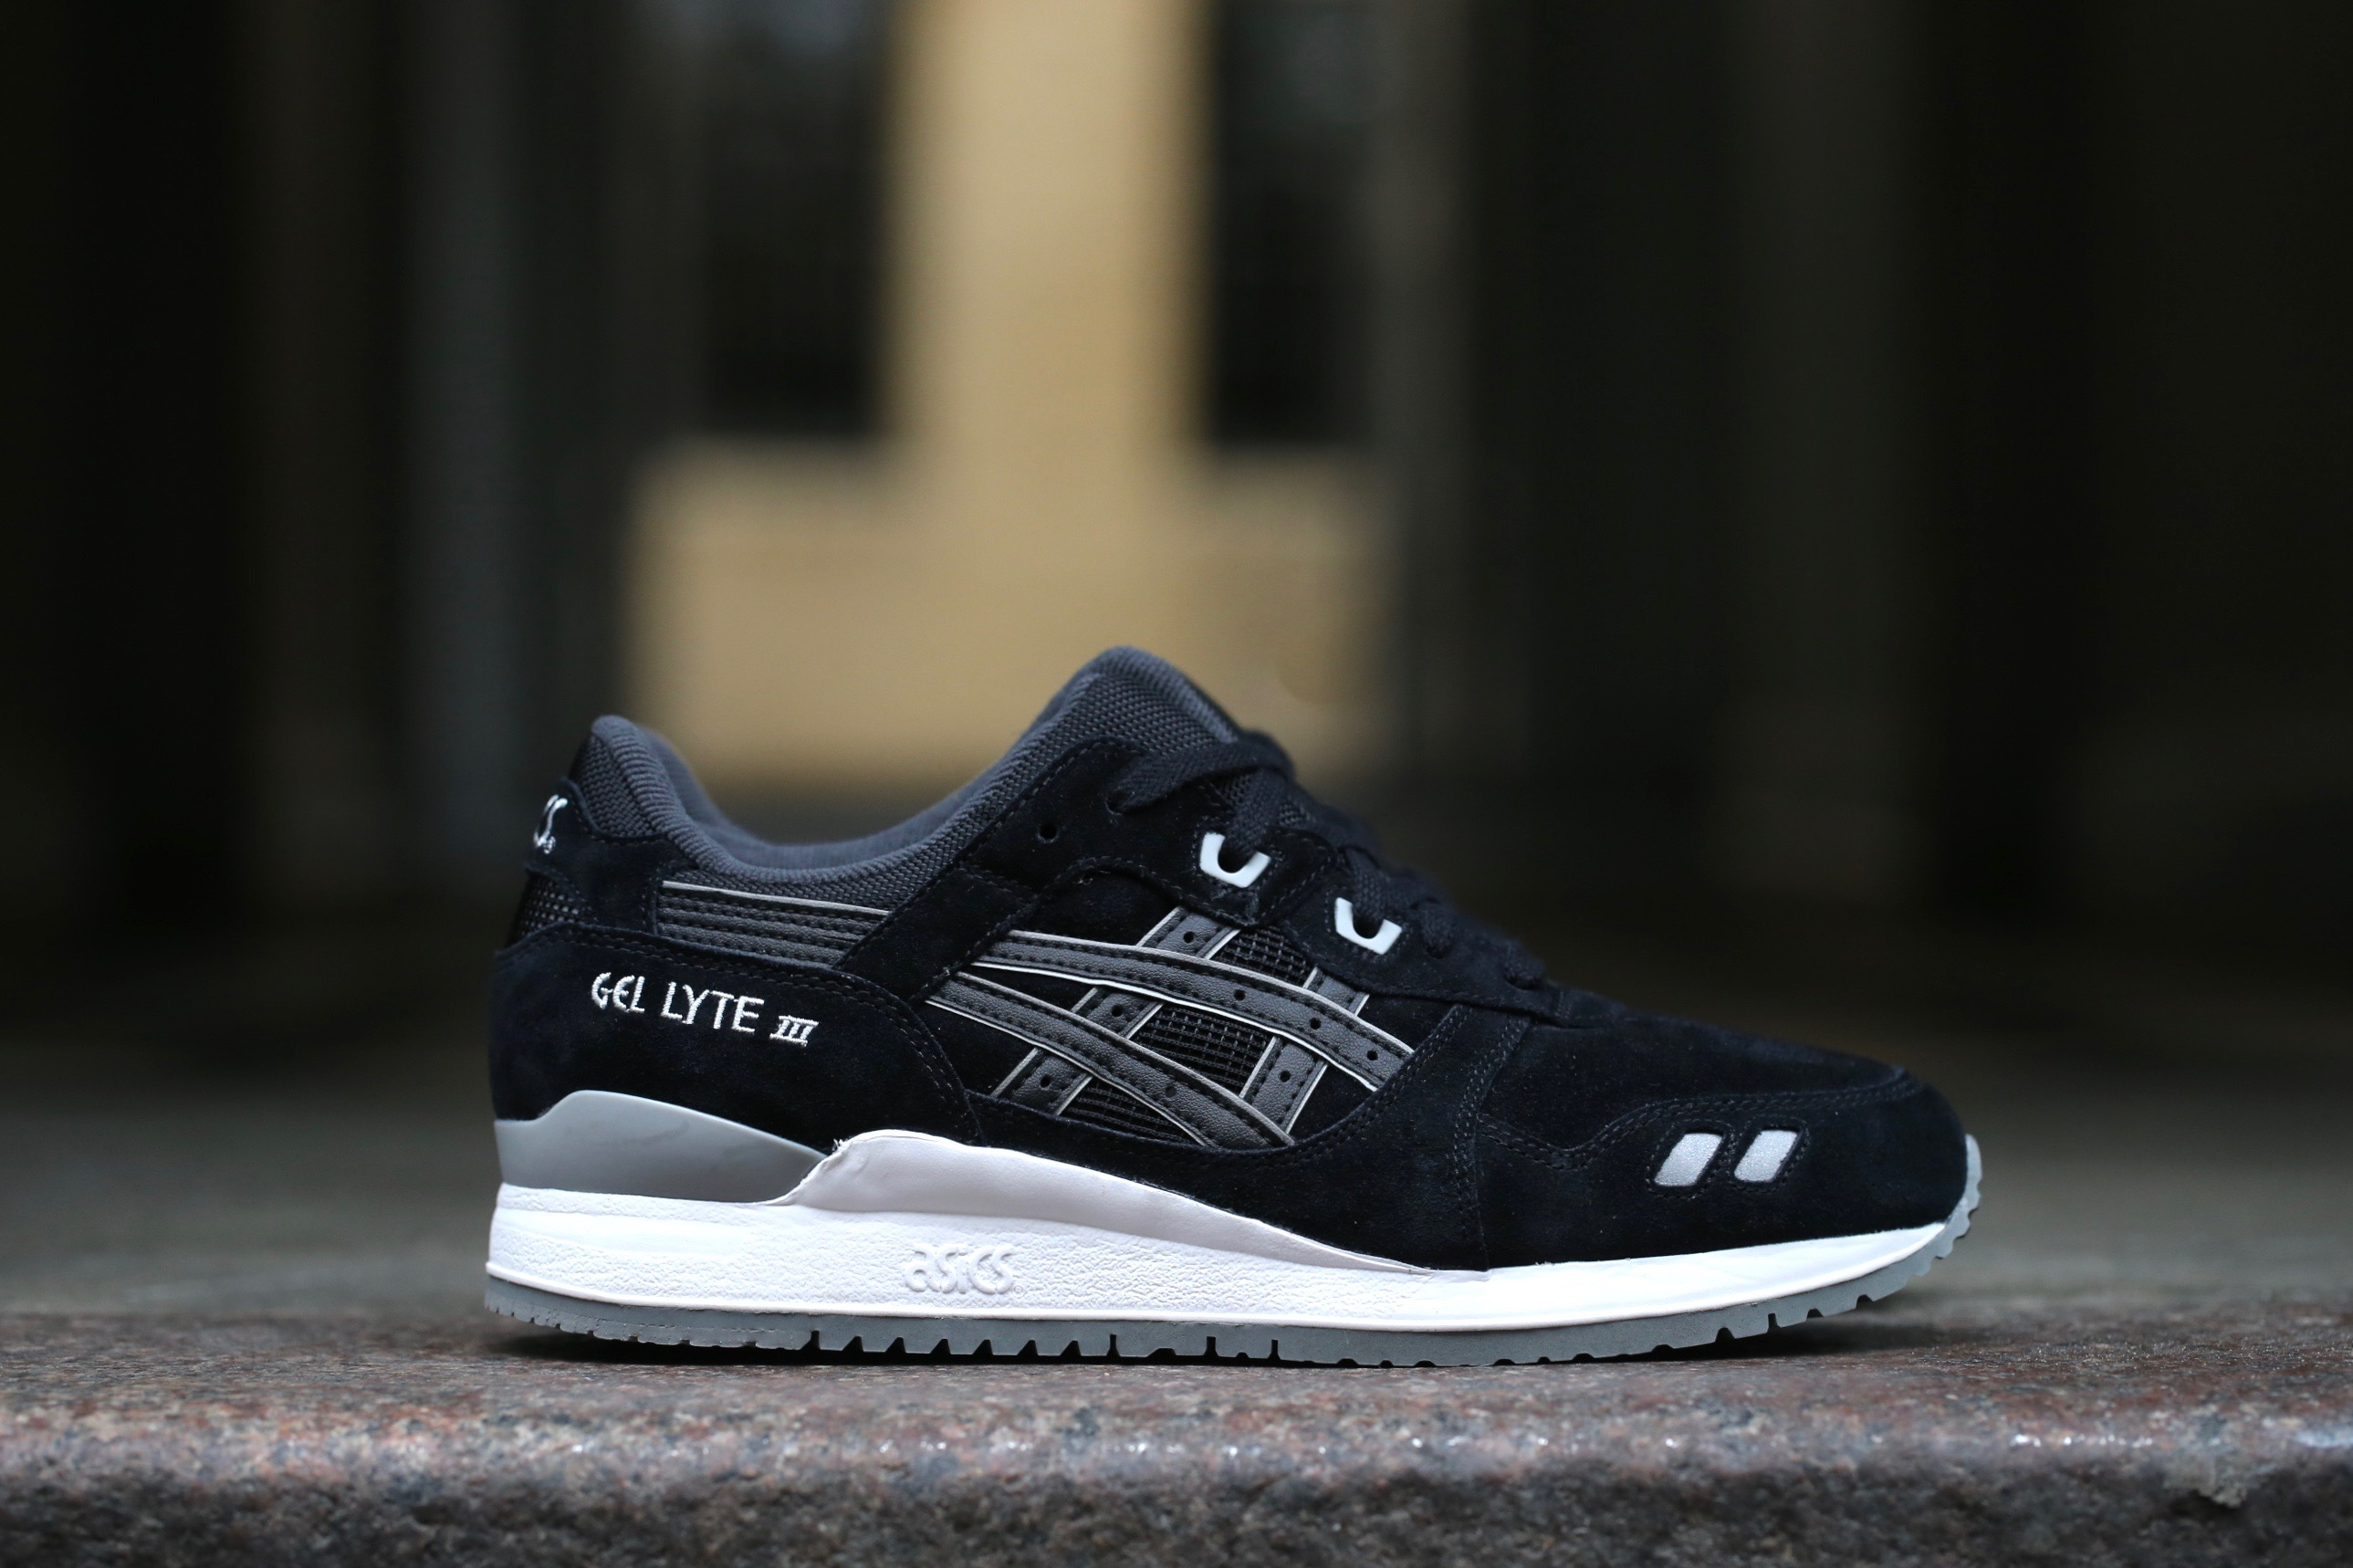 reputable site 0f687 3ee05 ASICS Gel-Lyte III